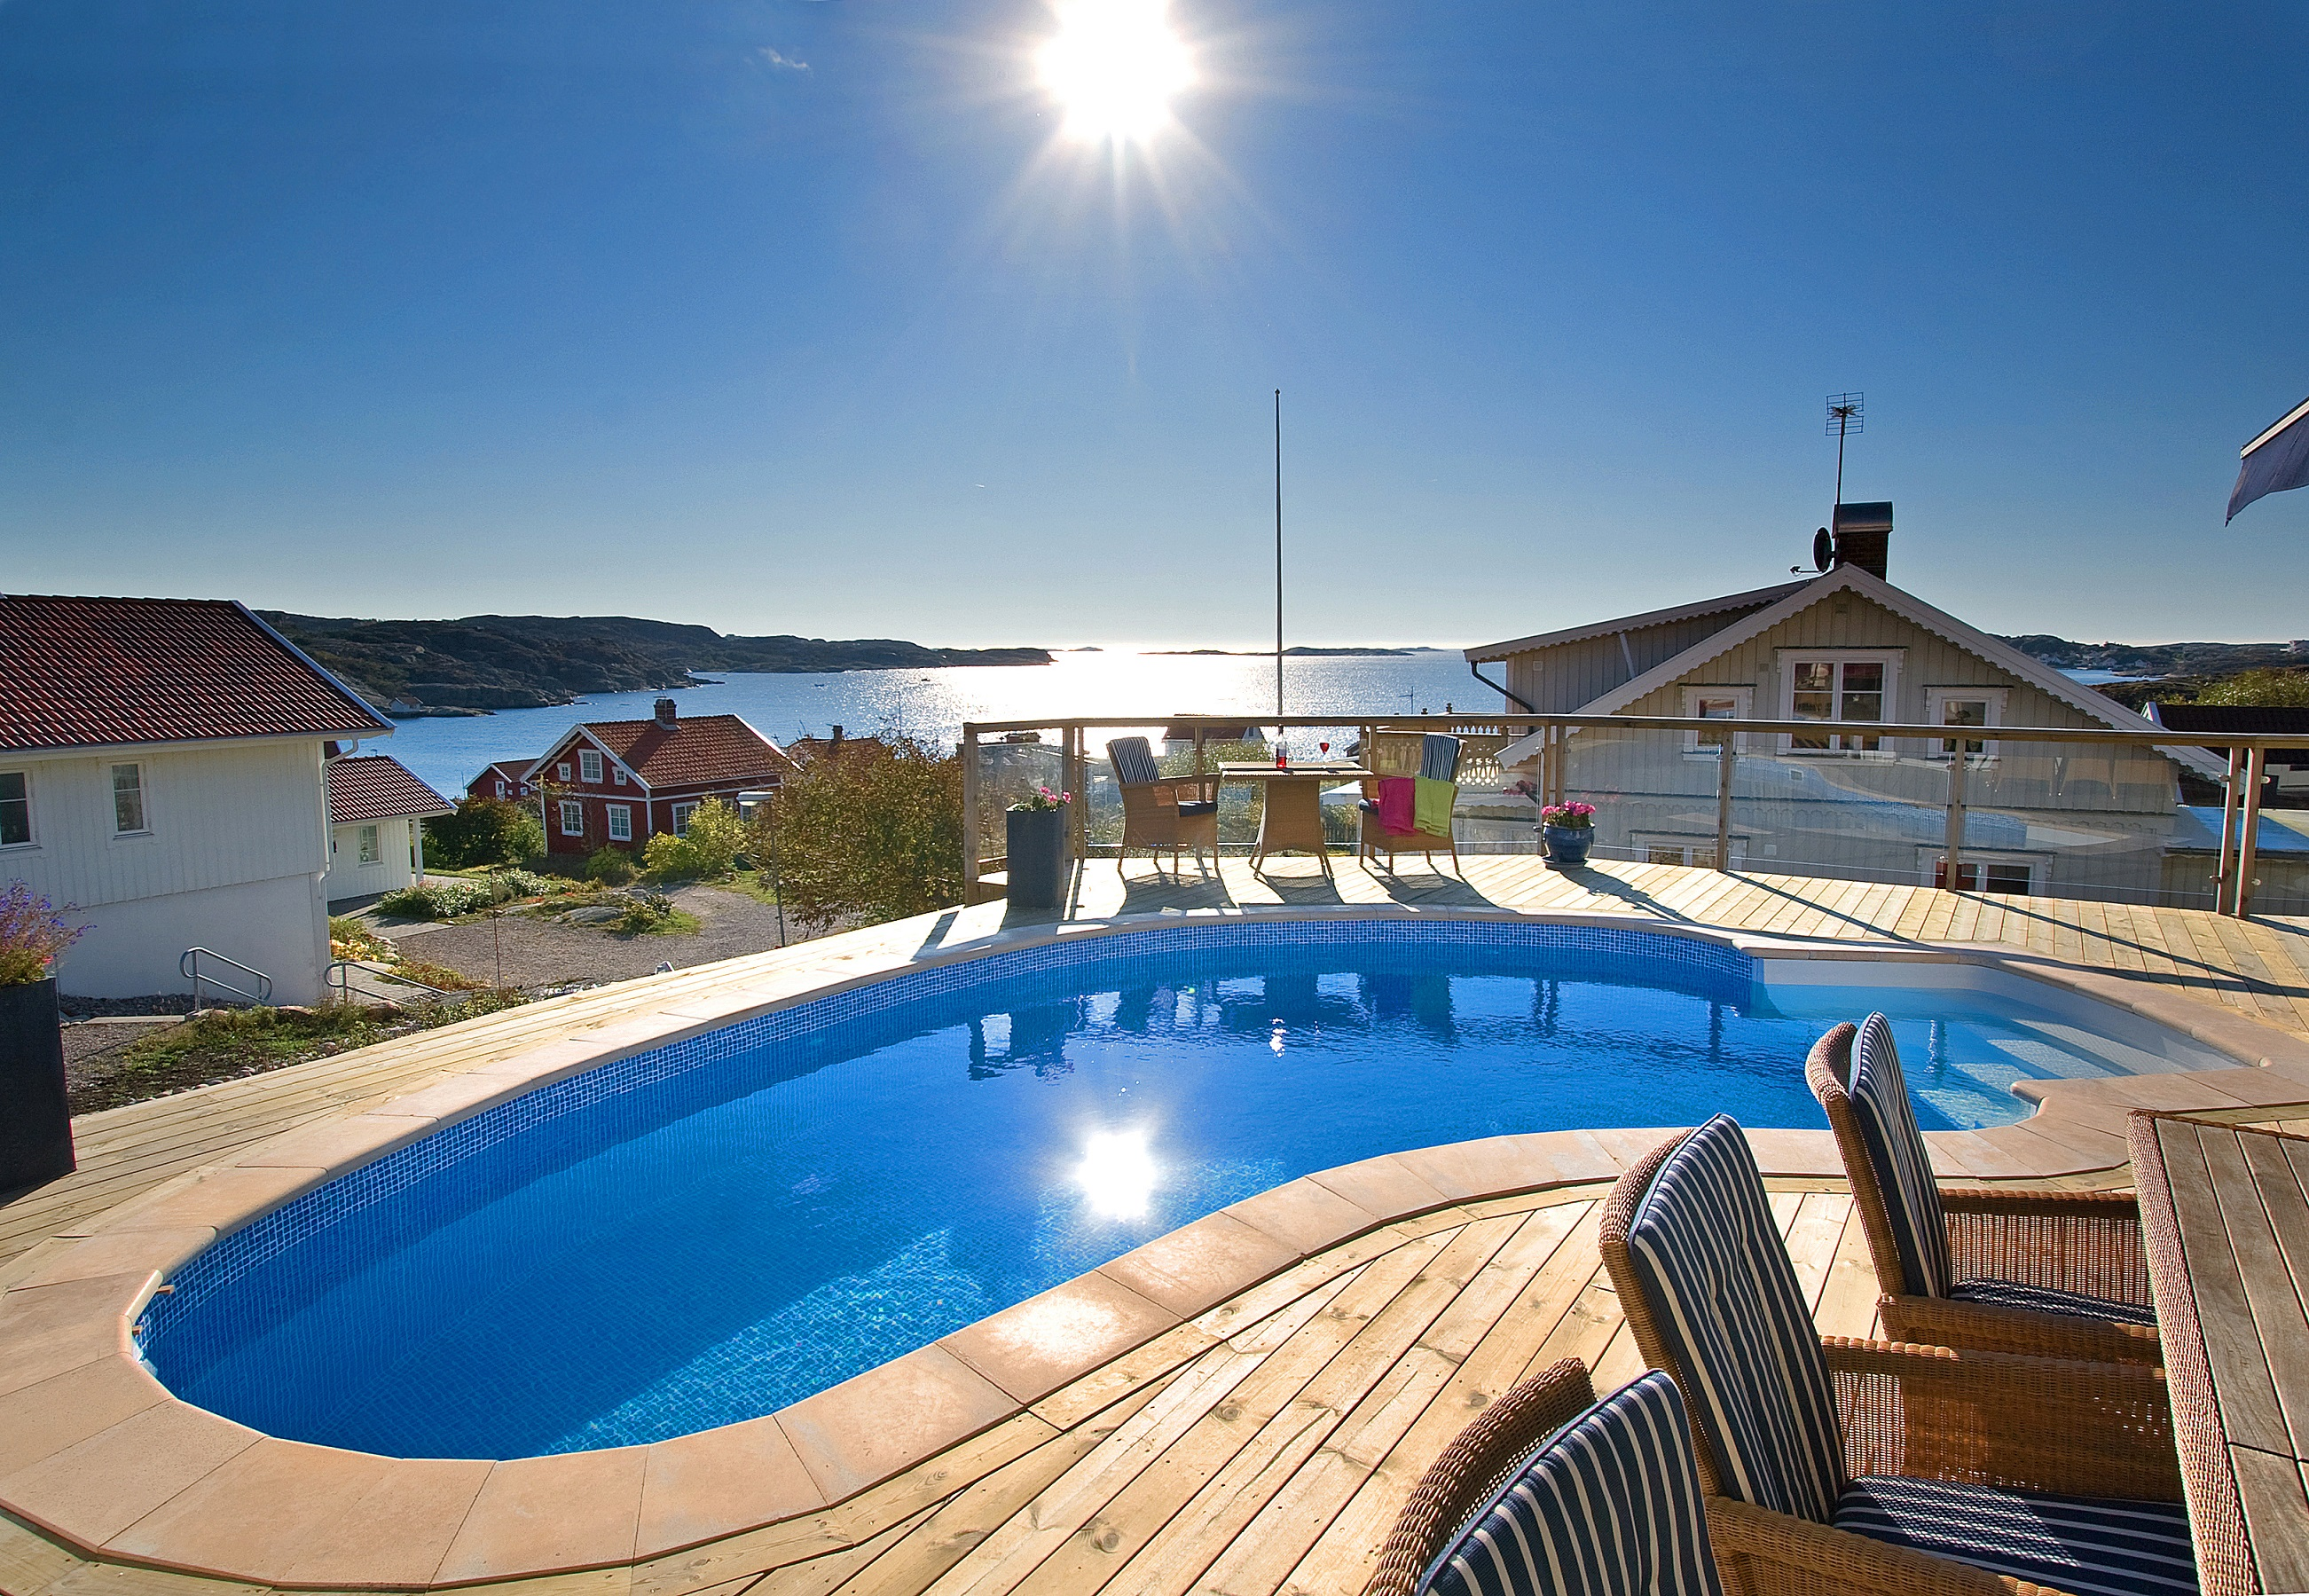 Einfamilienhaus für Verkauf beim Fantastic property in perfect condition by the sea Solbacken 4 Other Vastra Gotaland, Vastra Gotaland 45178 Schweden